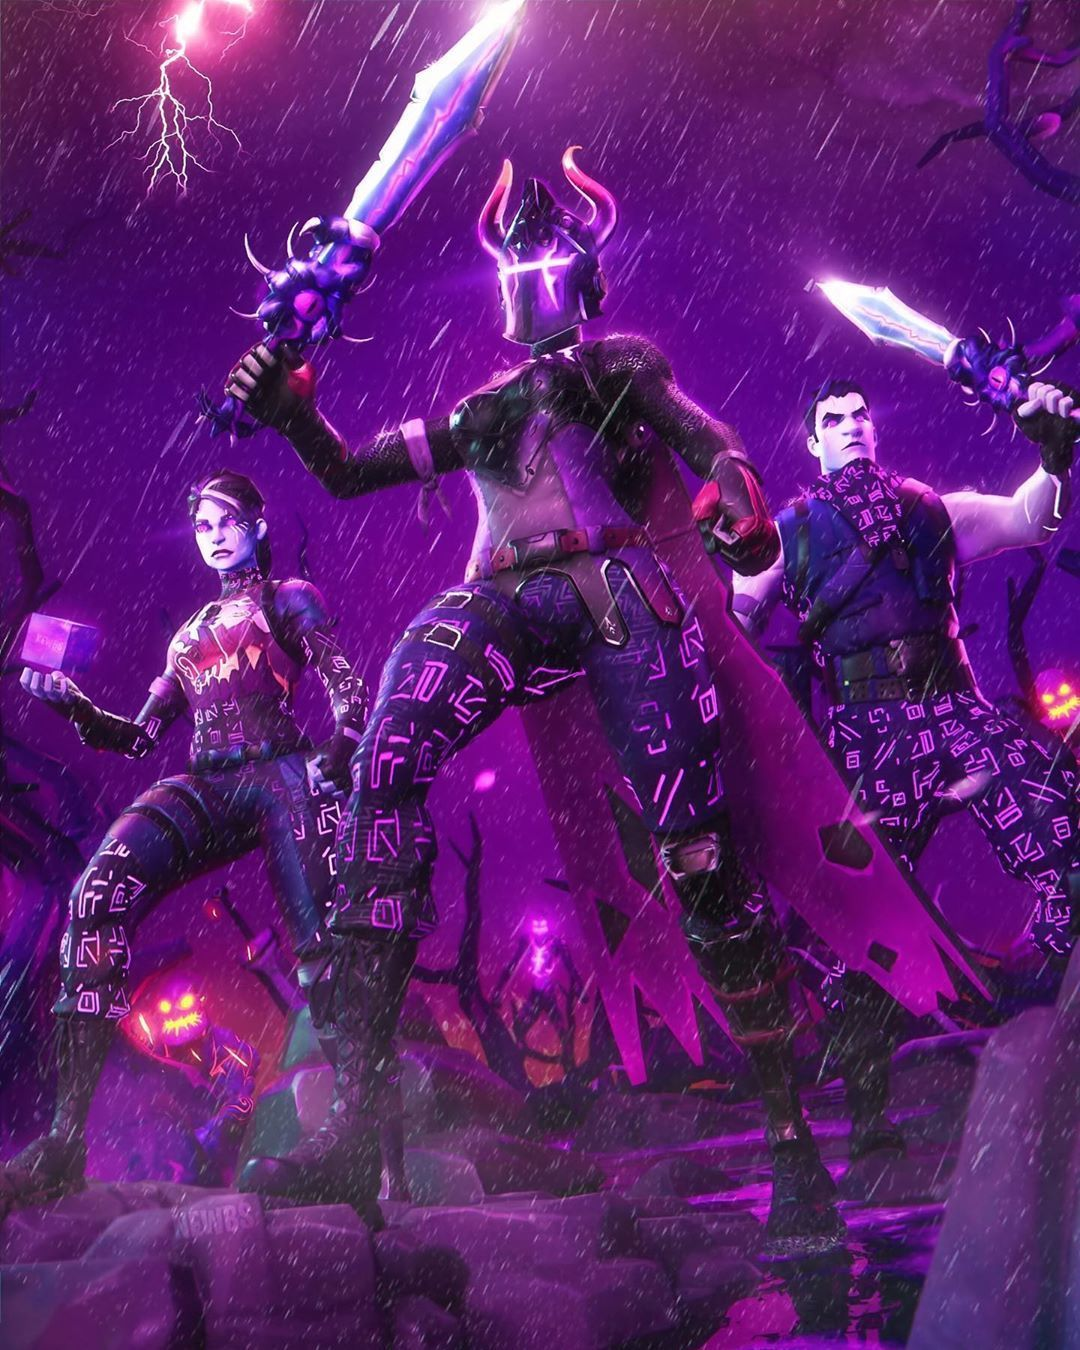 Best Qality Fortnite Merch Gaming Wallpapers Best Gaming Wallpapers Game Wallpaper Iphone